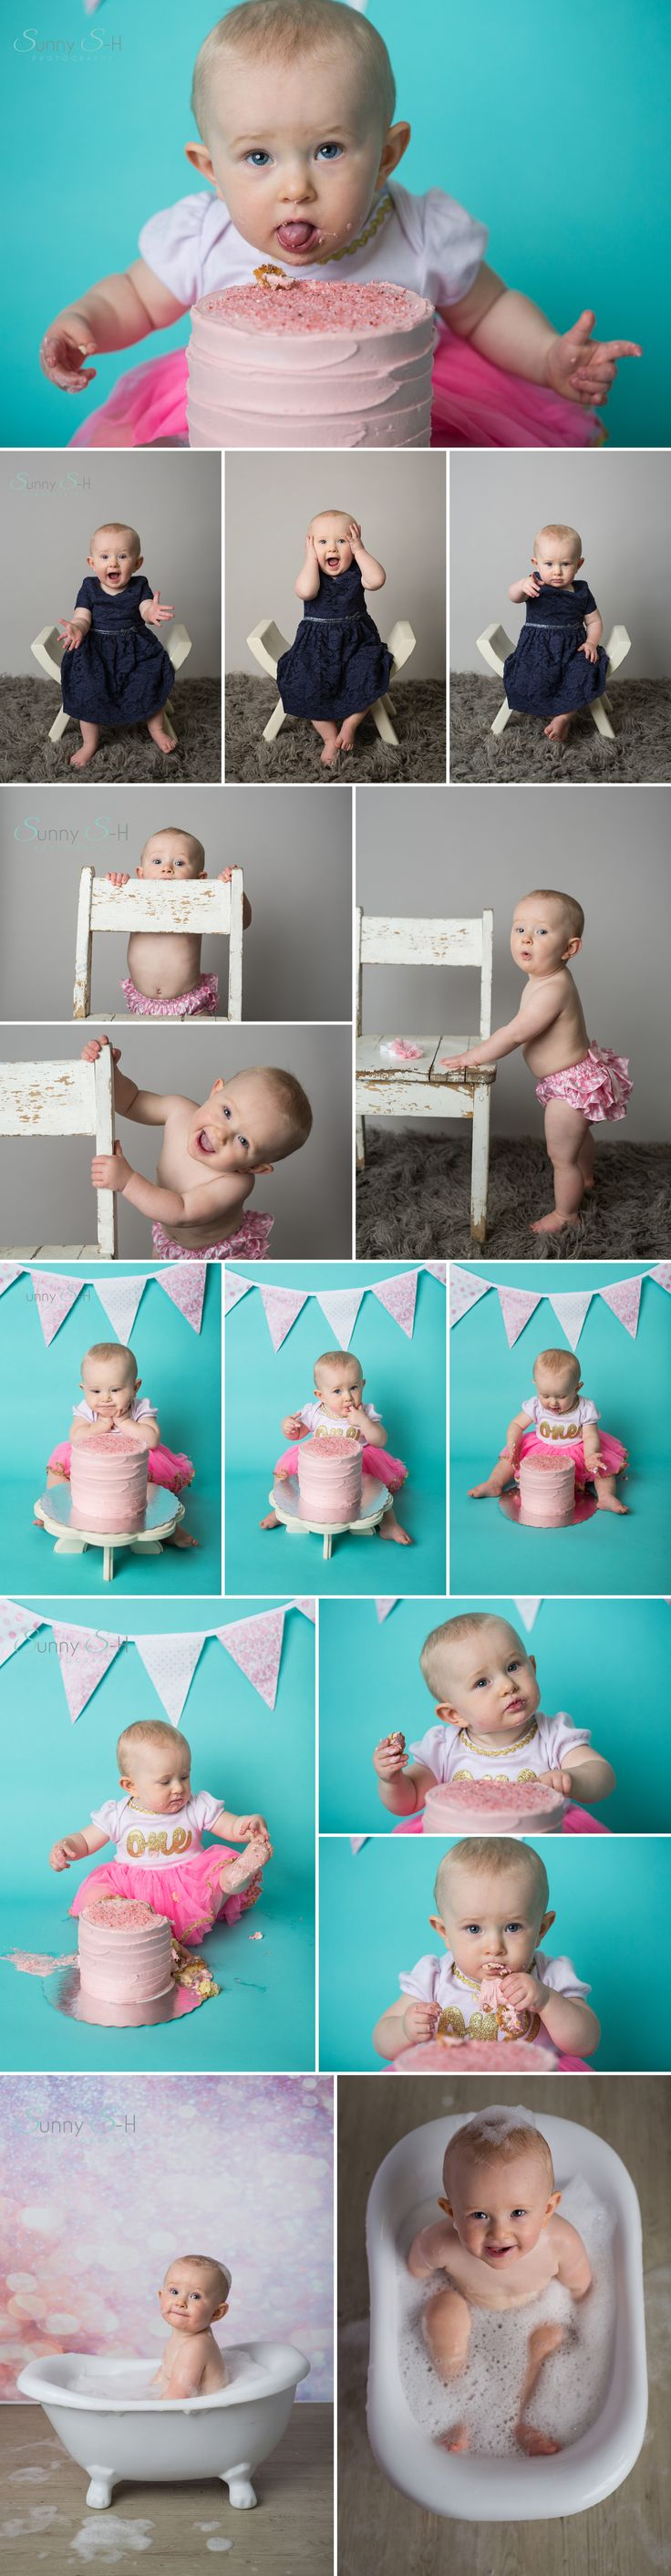 One year old Maddy and her super expressive first birthday studio cake smash session.  She makes the cutest faces.